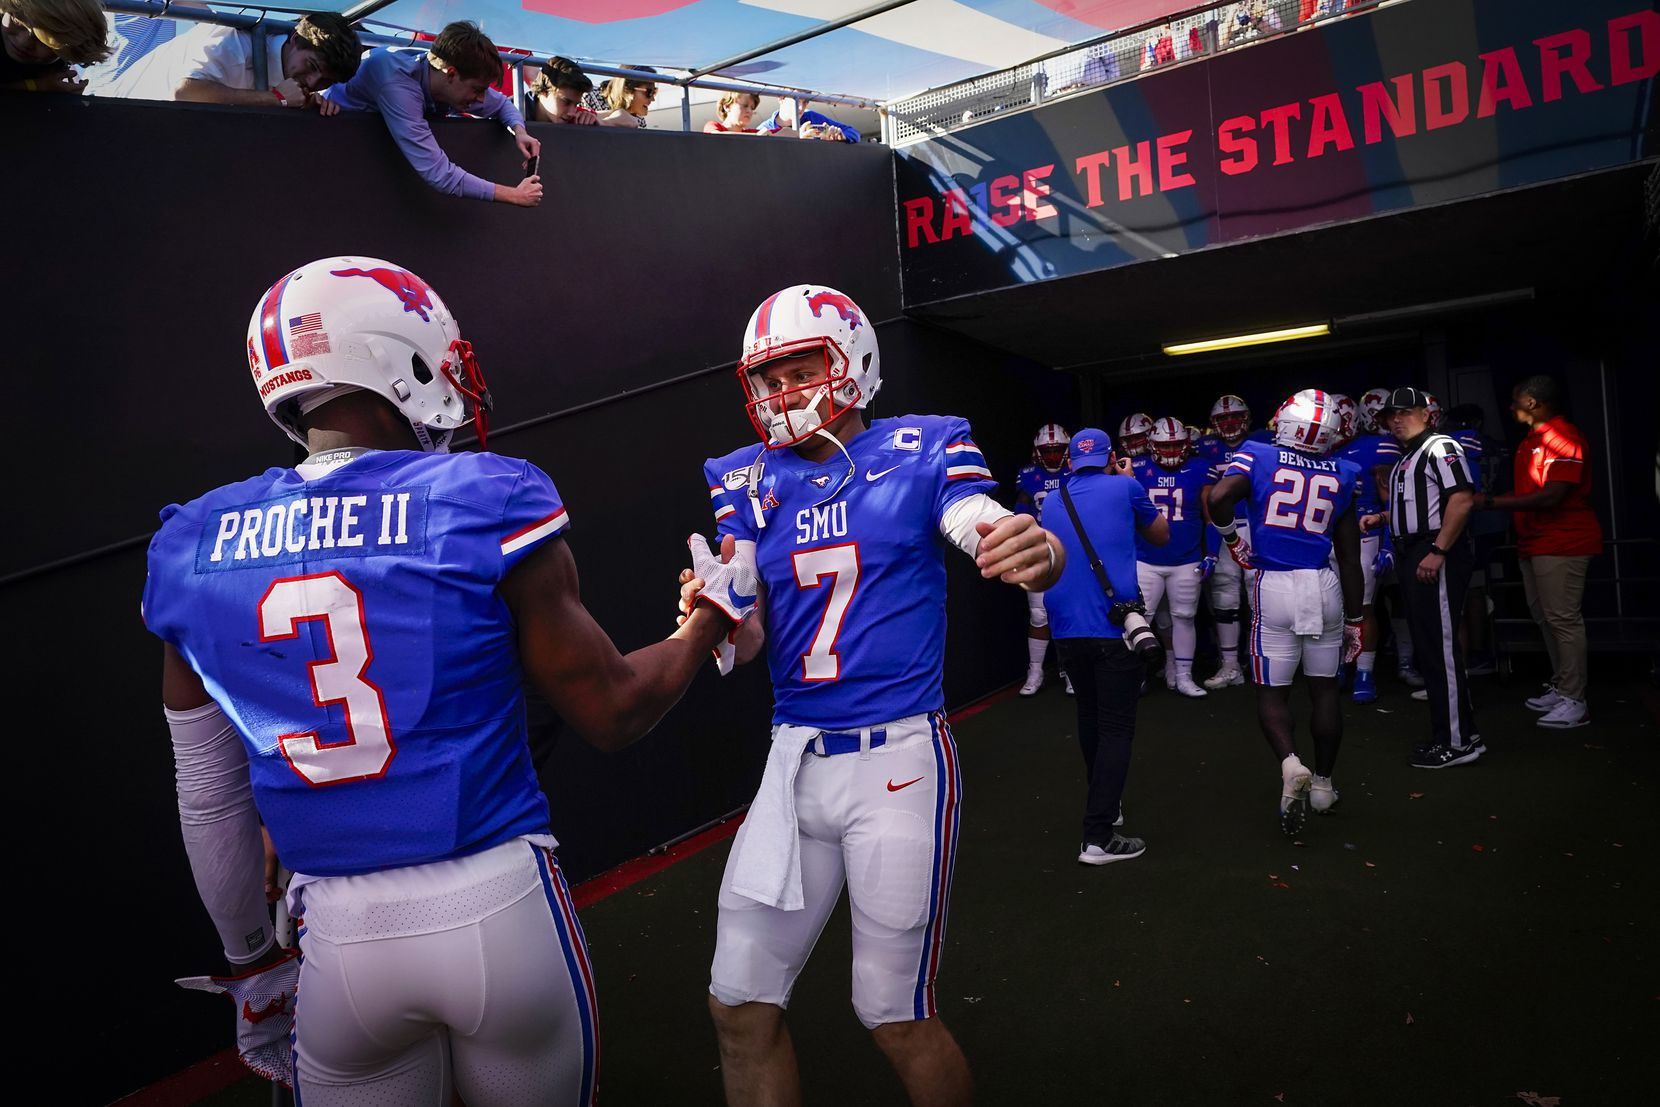 SMU quarterback Shane Buechele (7) prepares to take the field with SMU wide receiver James Proche (3) before an NCAA football game against Tulane at Ford Stadium on Saturday, Nov. 30, 2019, in Dallas.